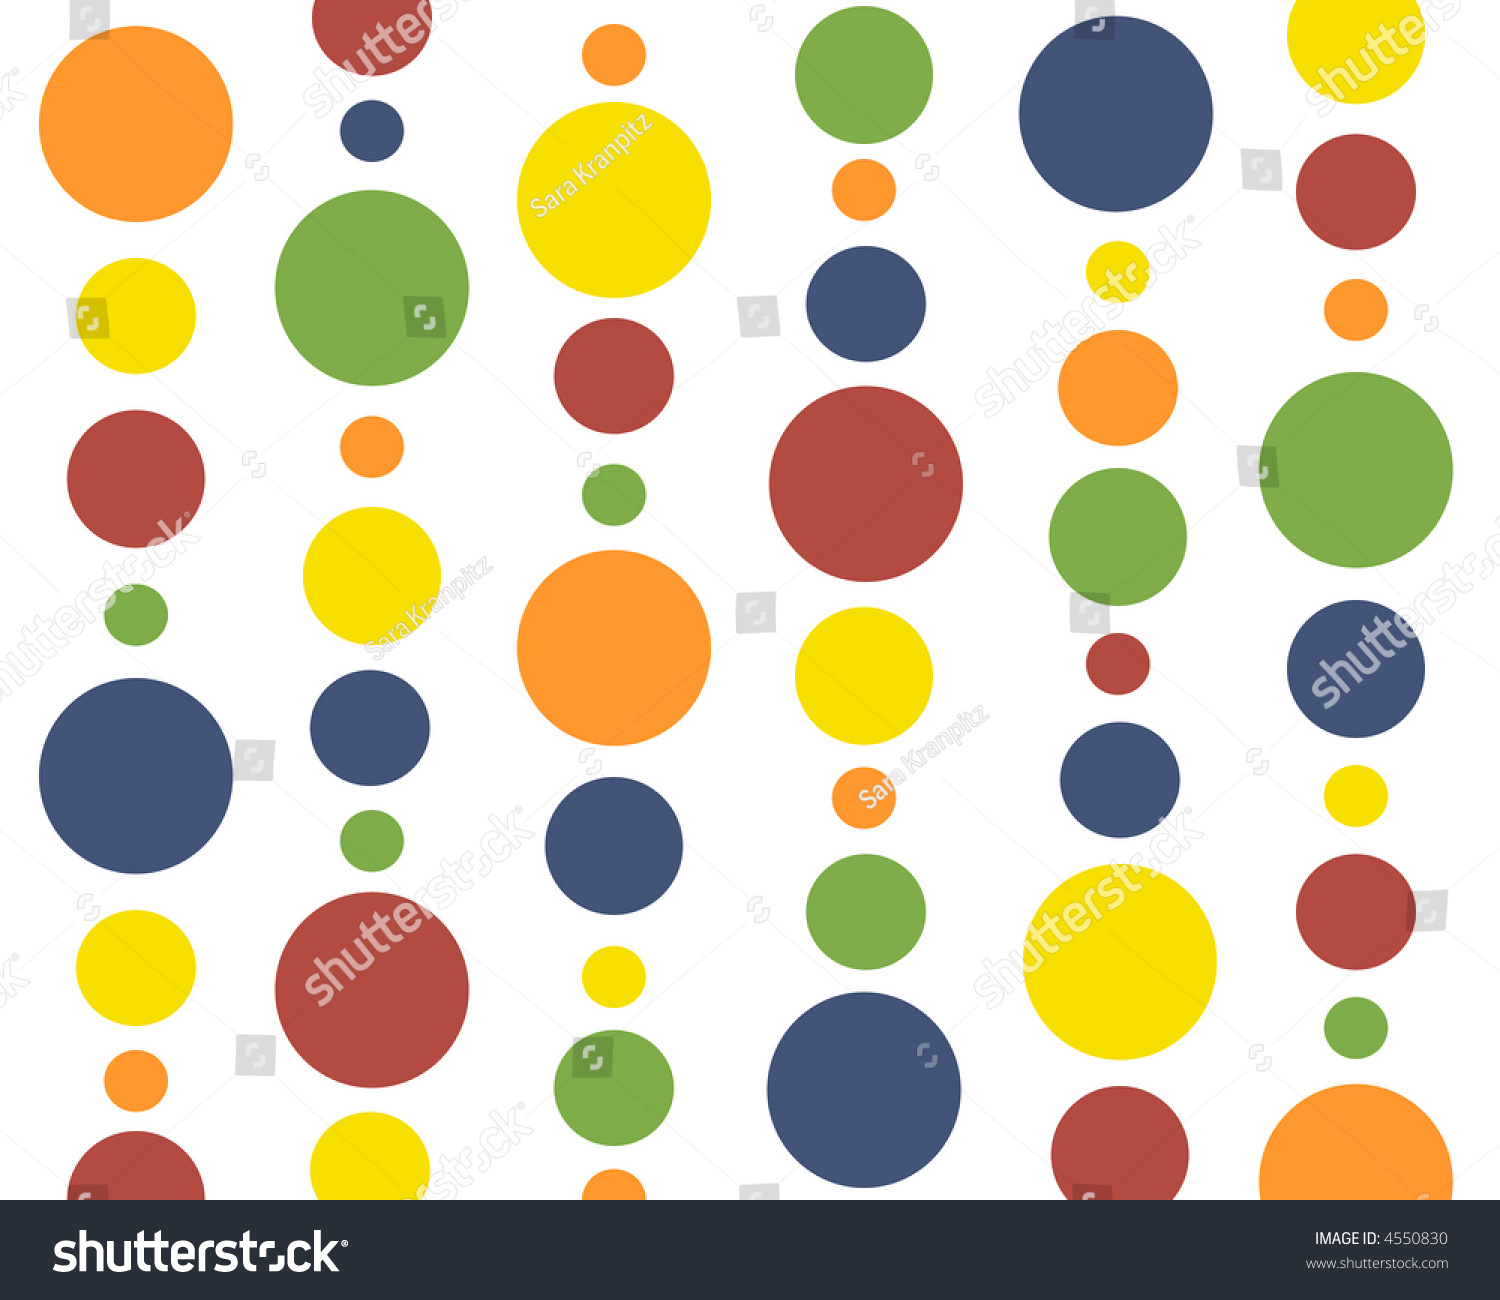 primary colors polkadot background stock illustration